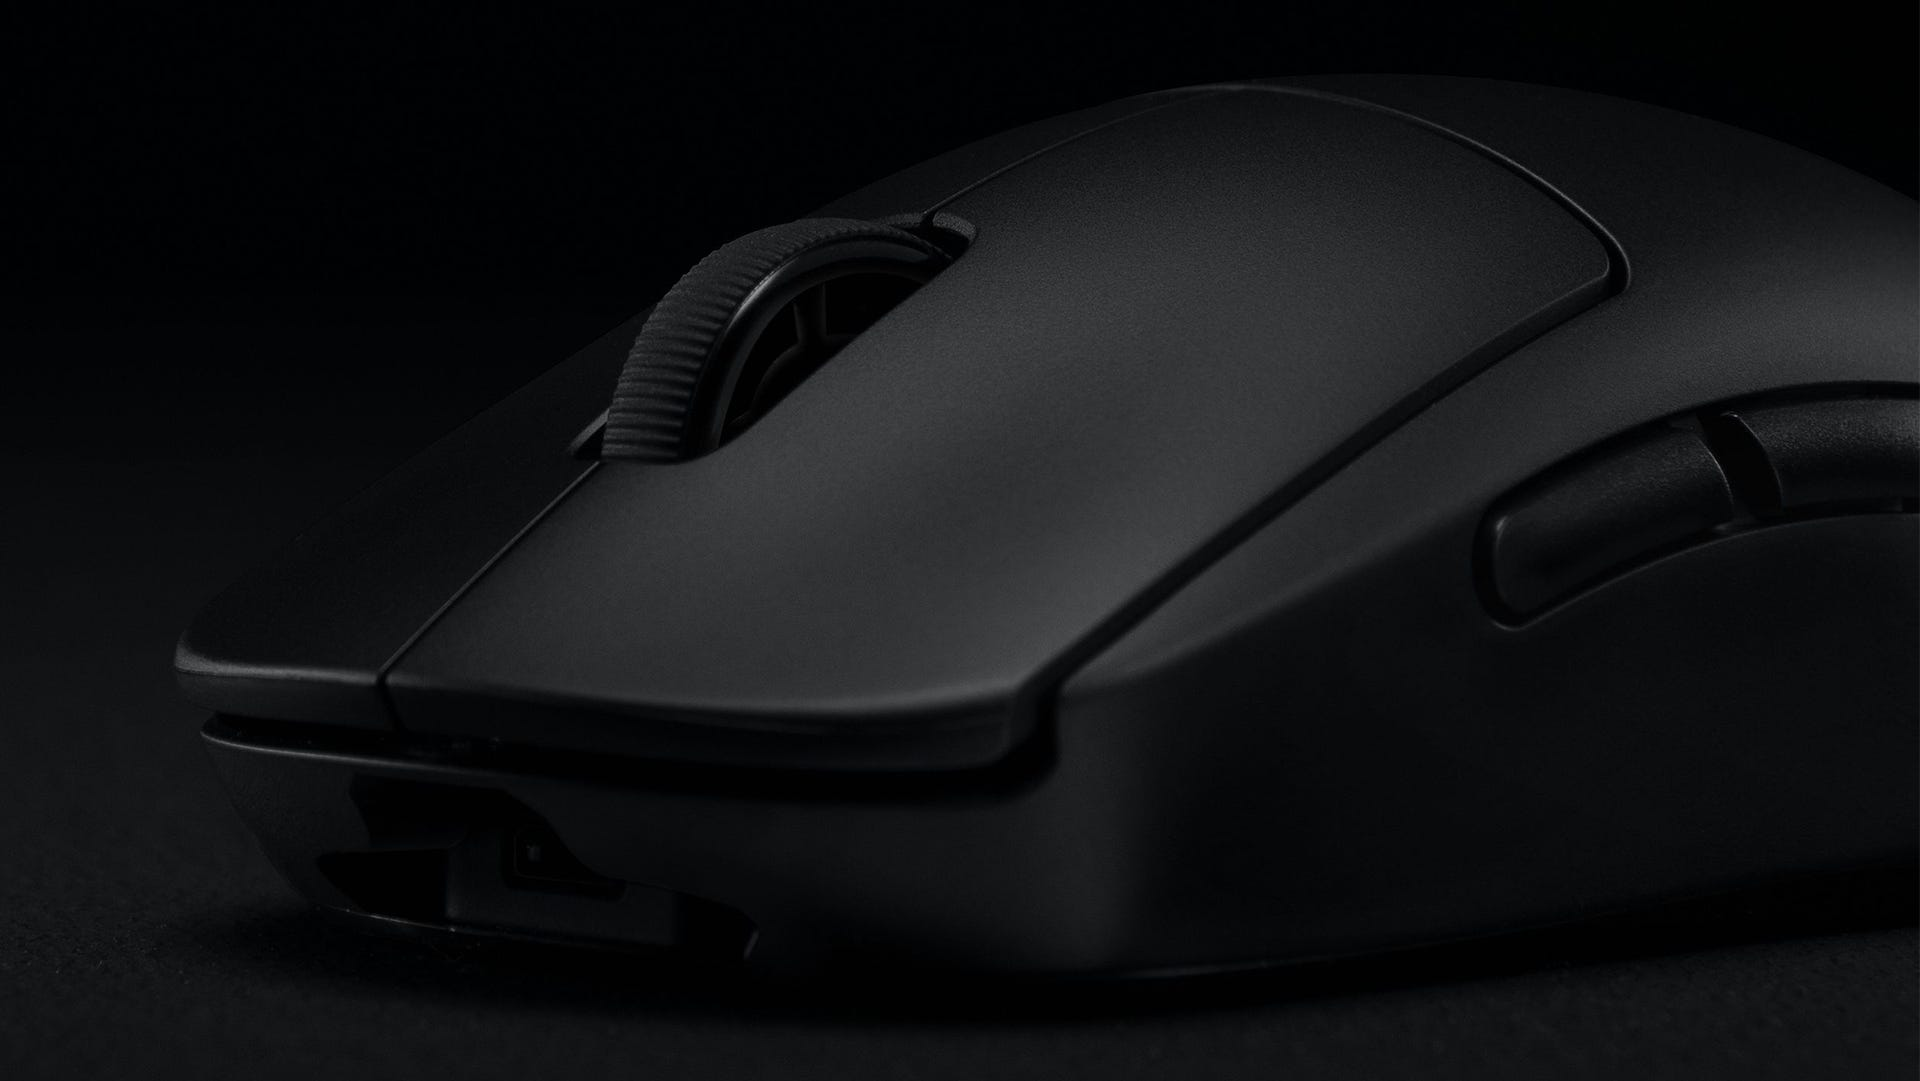 Logitech S Newest Pro Wireless Mouse Has Already Proved Itself With